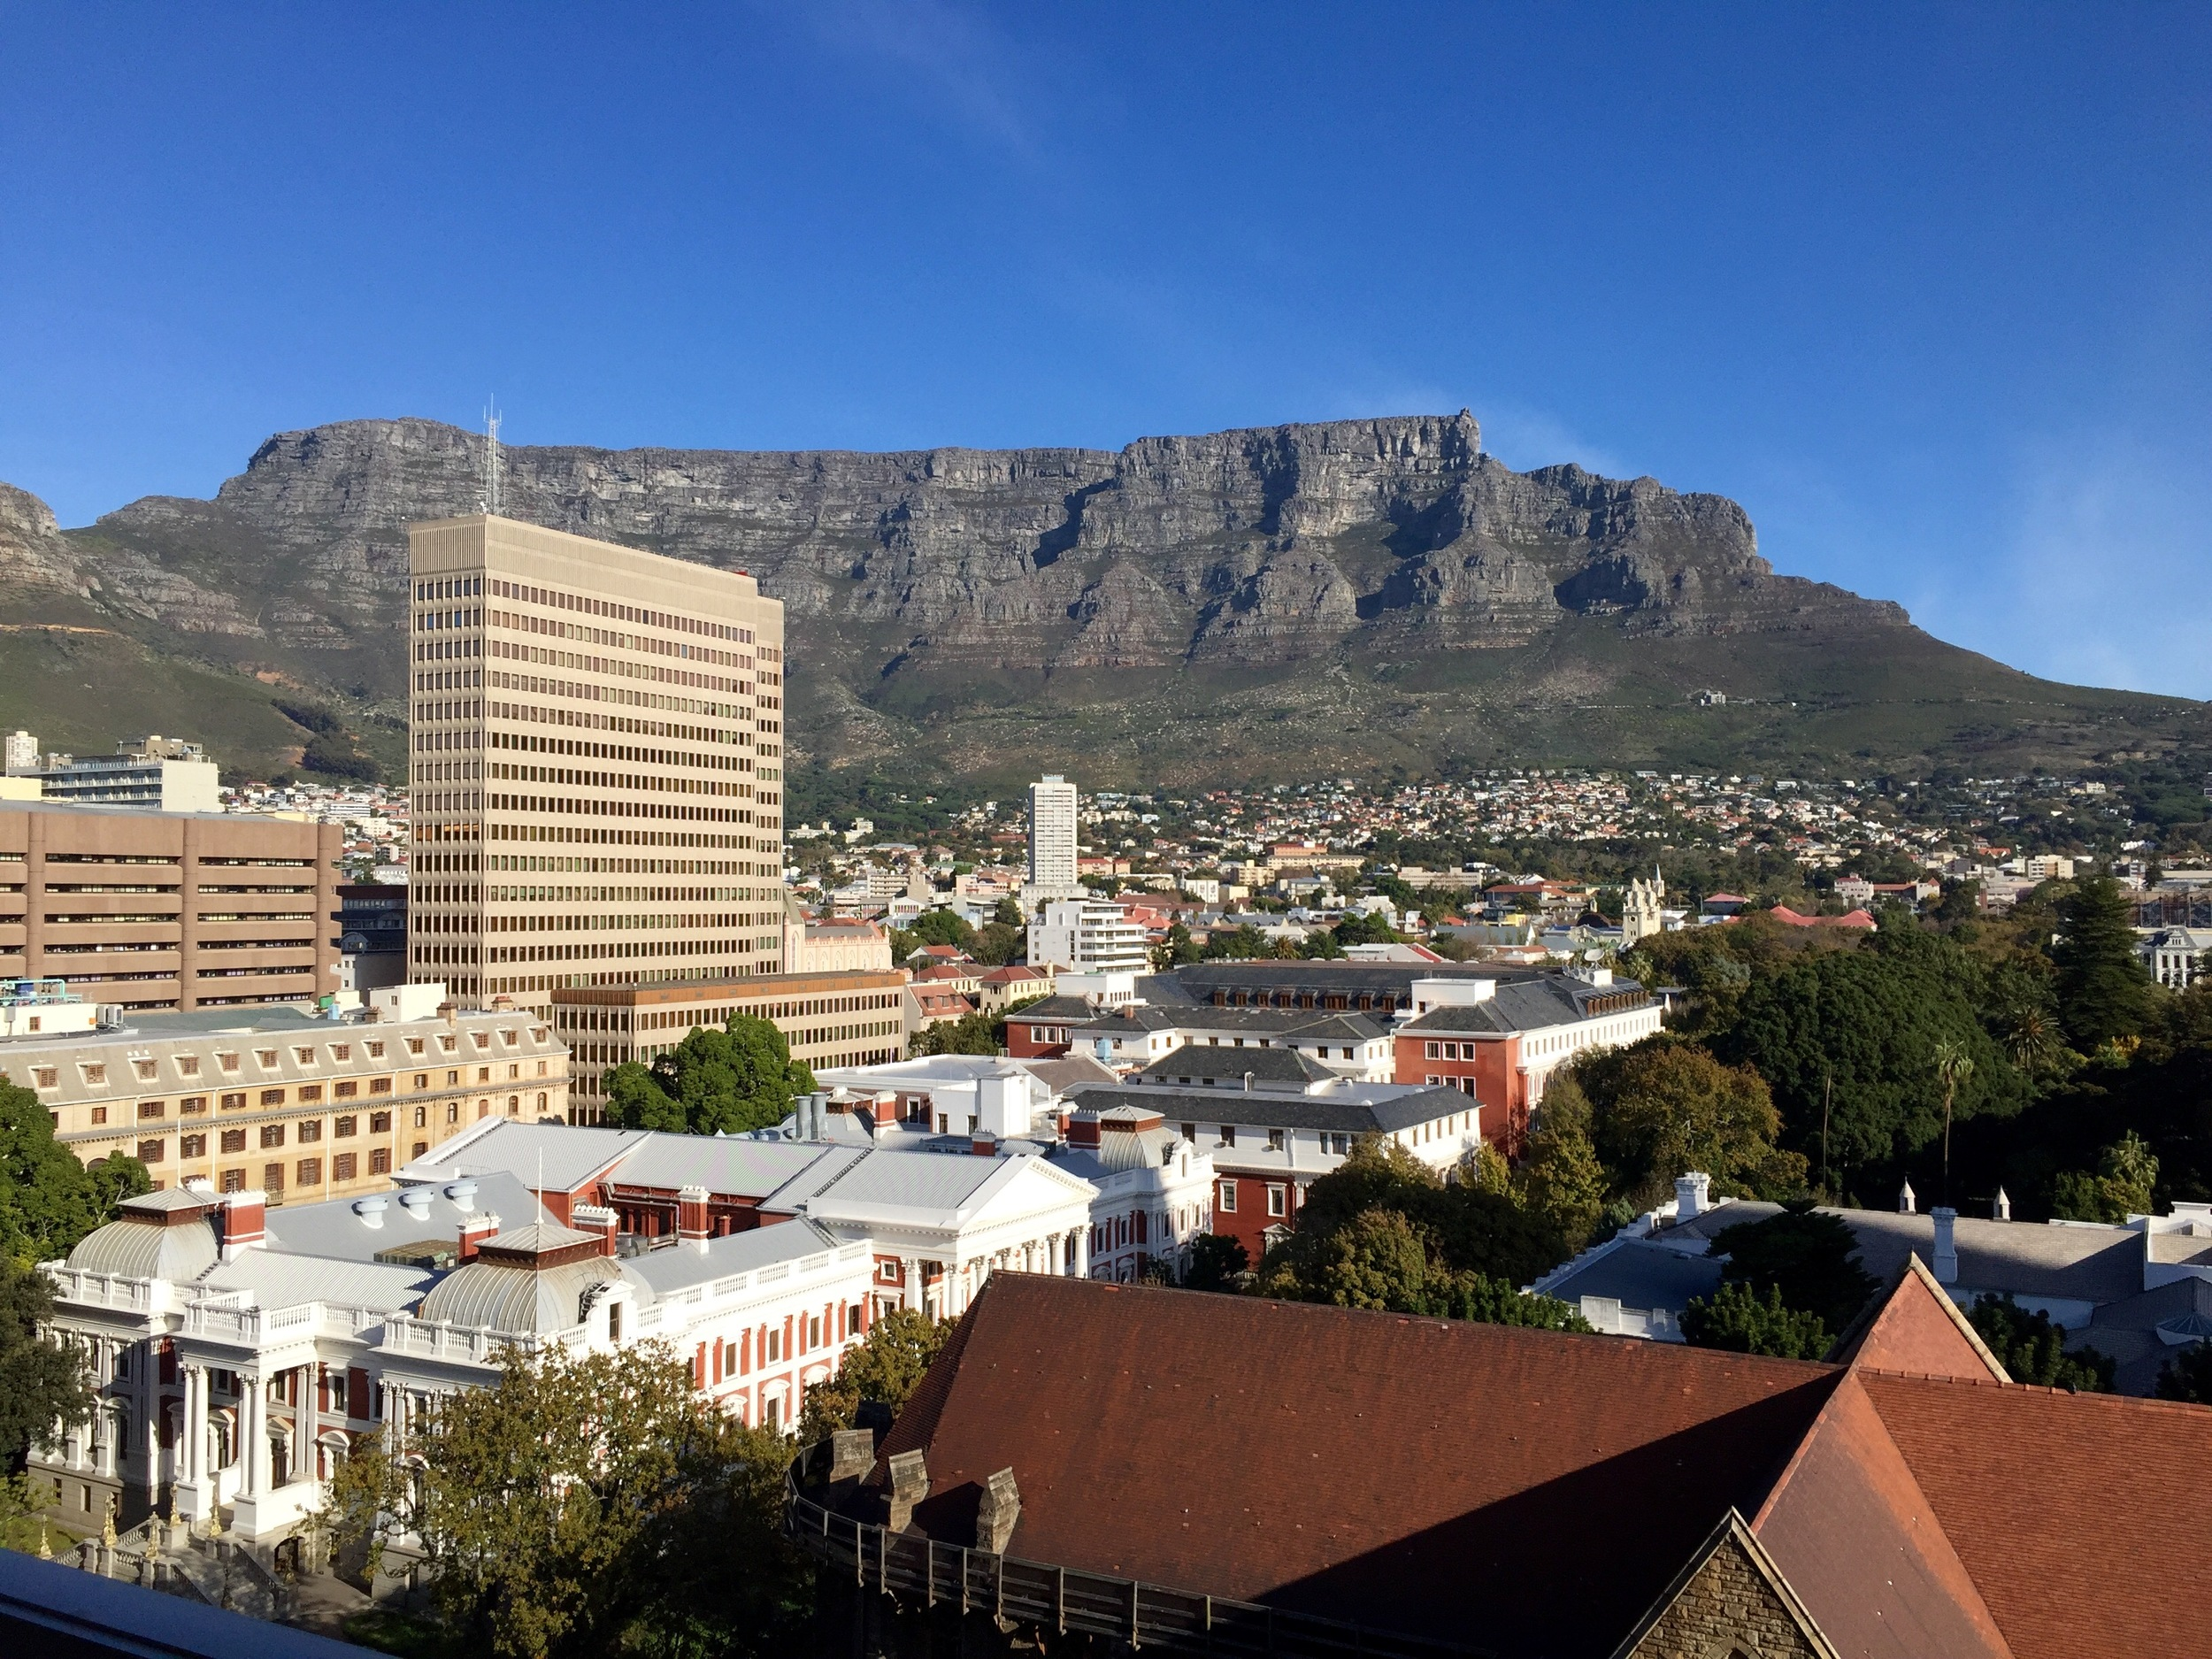 How's this for a #HotelRoomView? The new 7th Natural Wonder of the world, Table Mountain, as seen from my balcony. © Traverate 2016